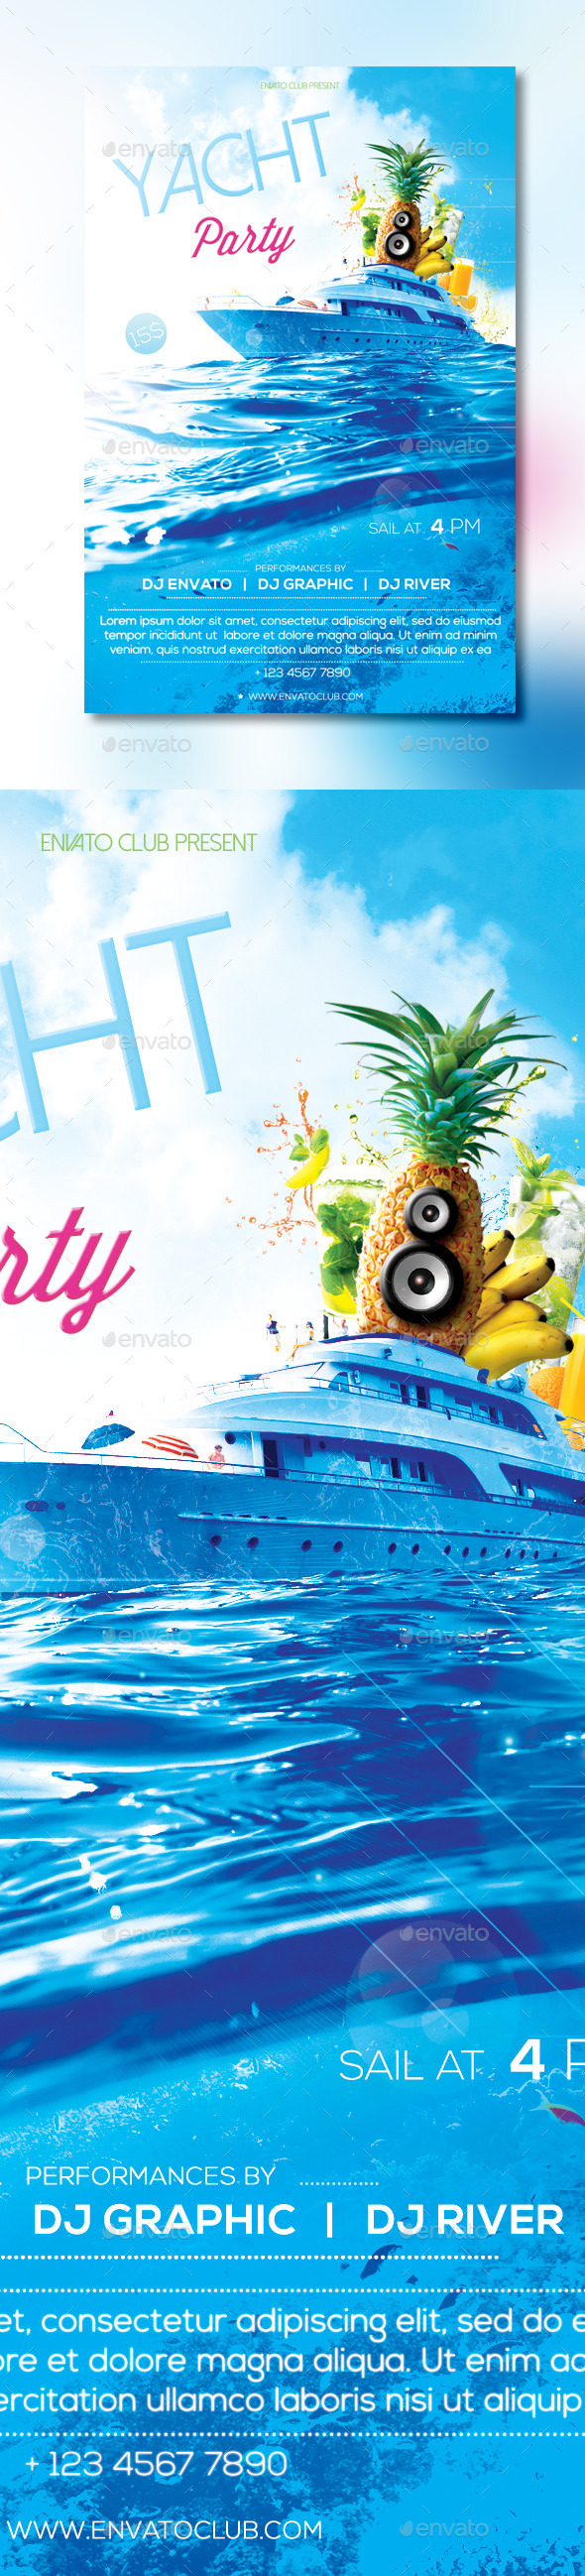 GraphicRiver Yacht Party Flyer 10509274